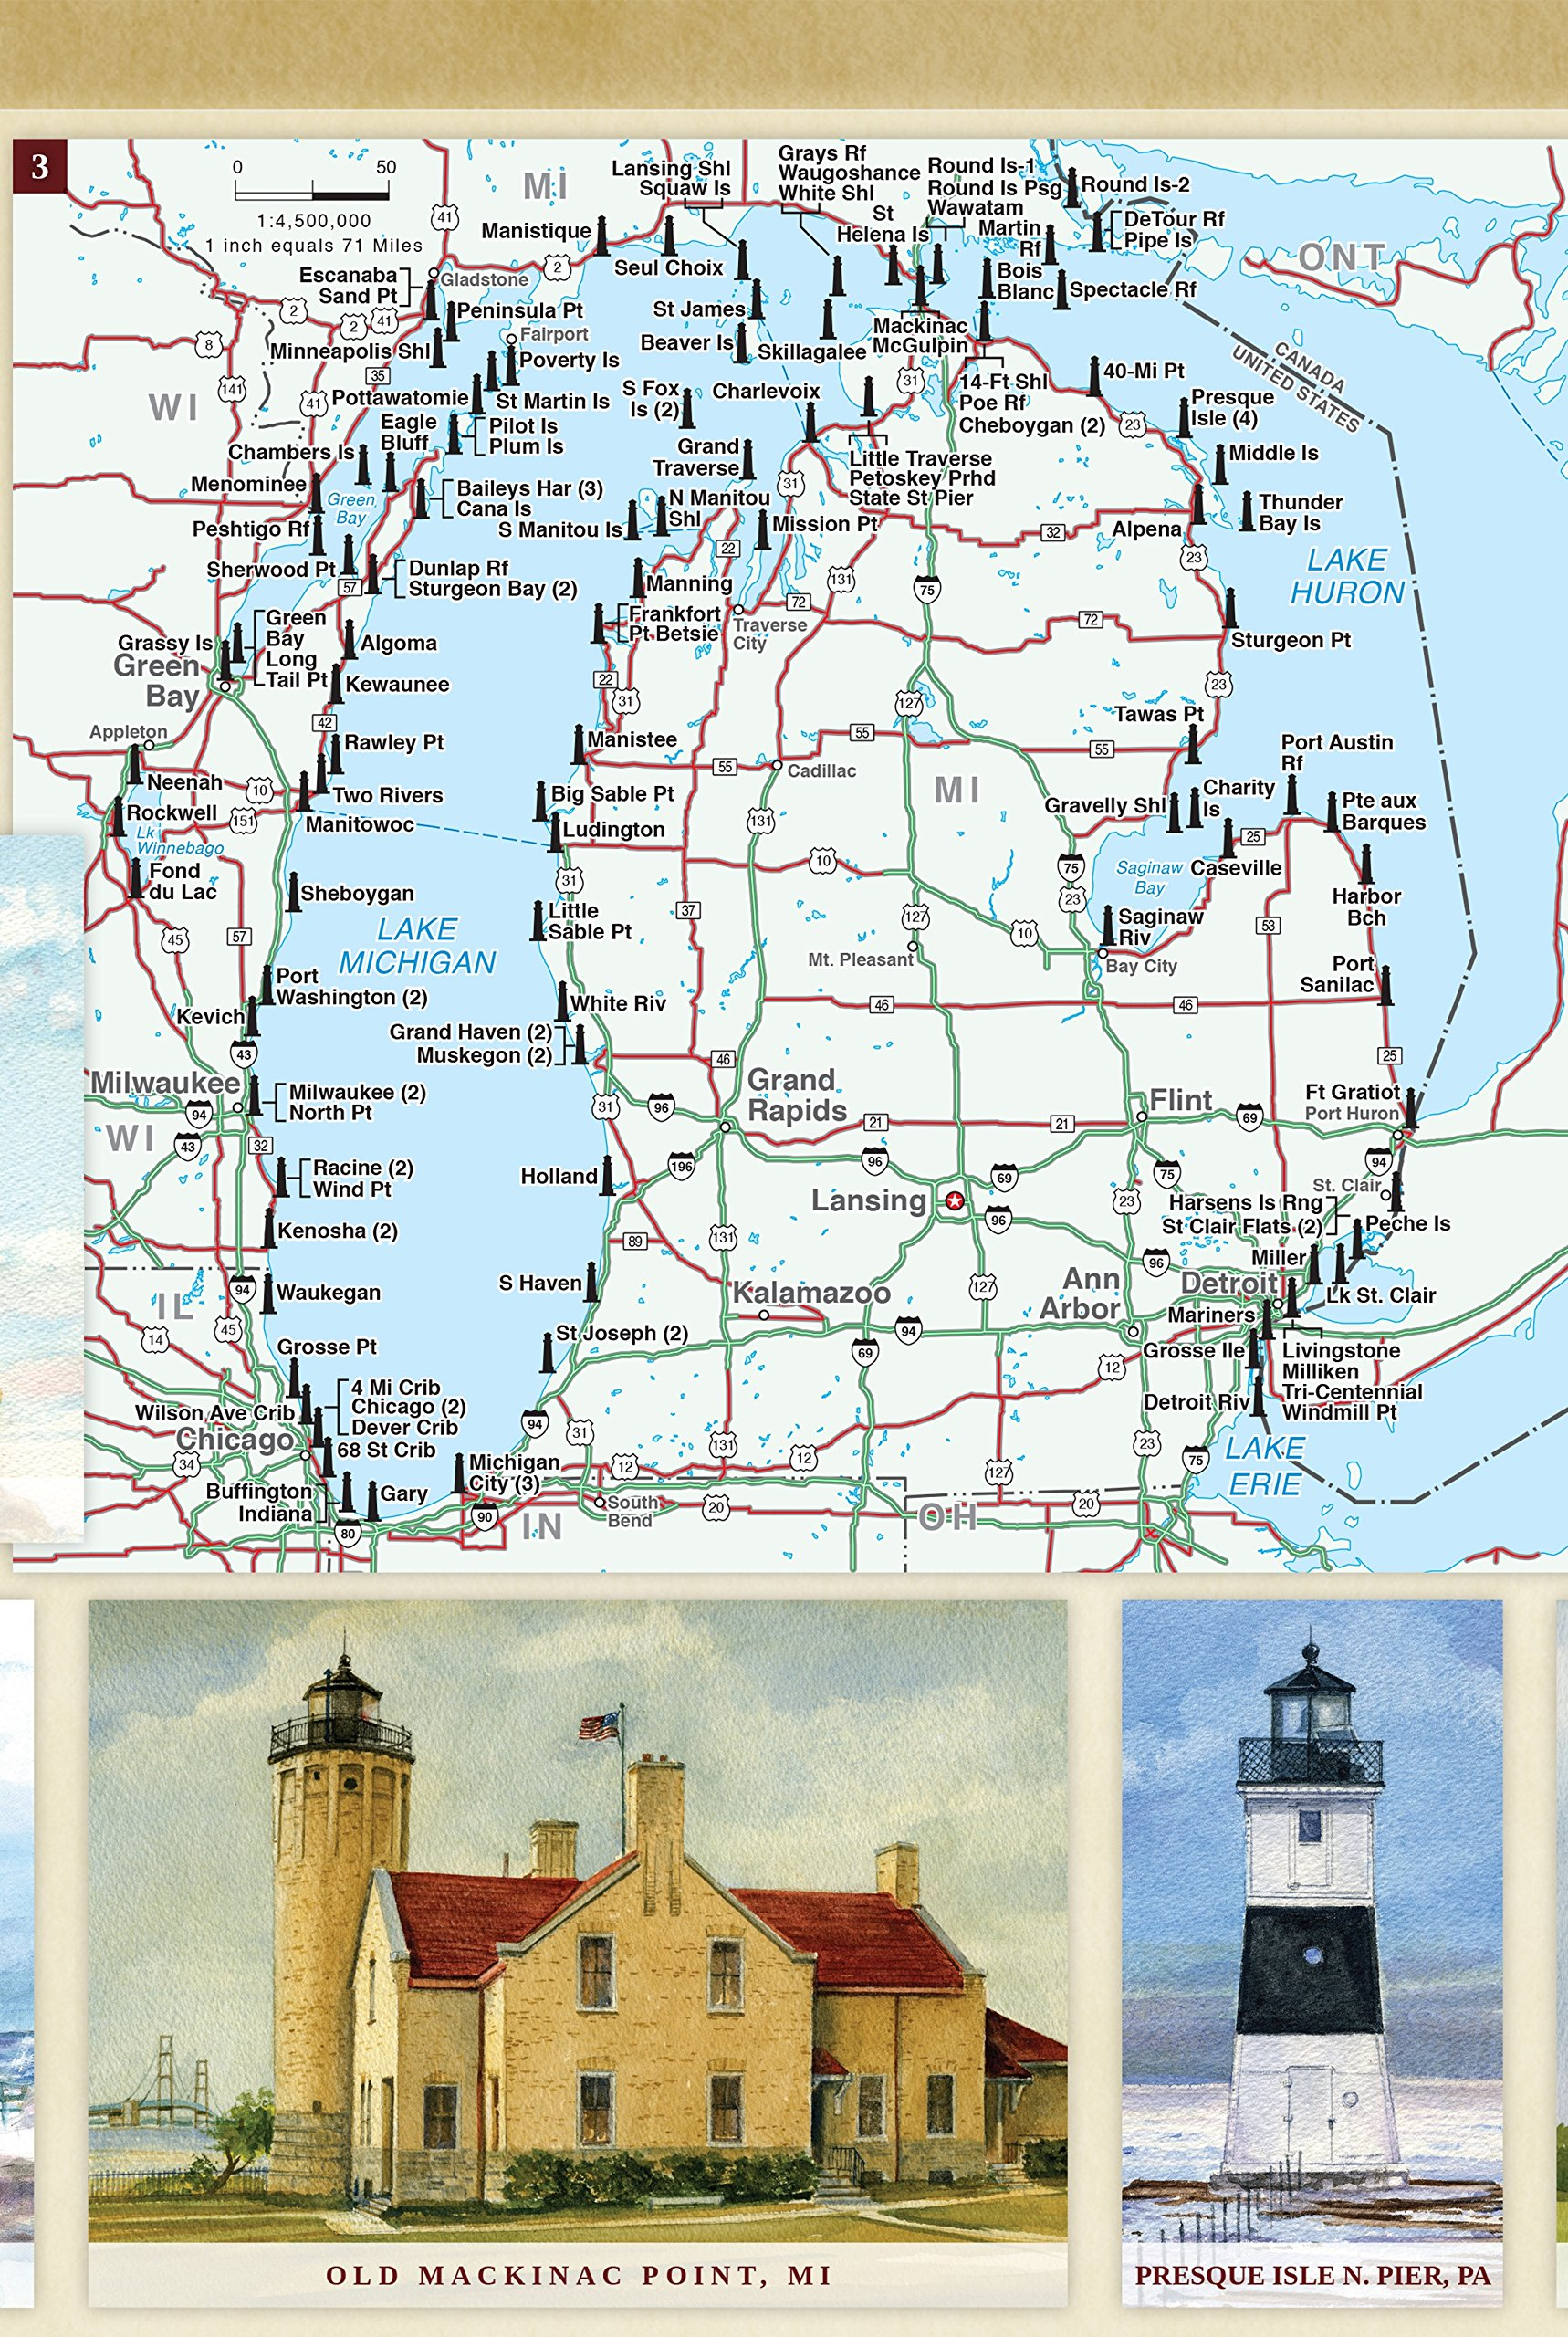 united states lighthouses ilrated map guide bella stander gerald c hill cover jim daviner diana hertz peter m mason ken matthew